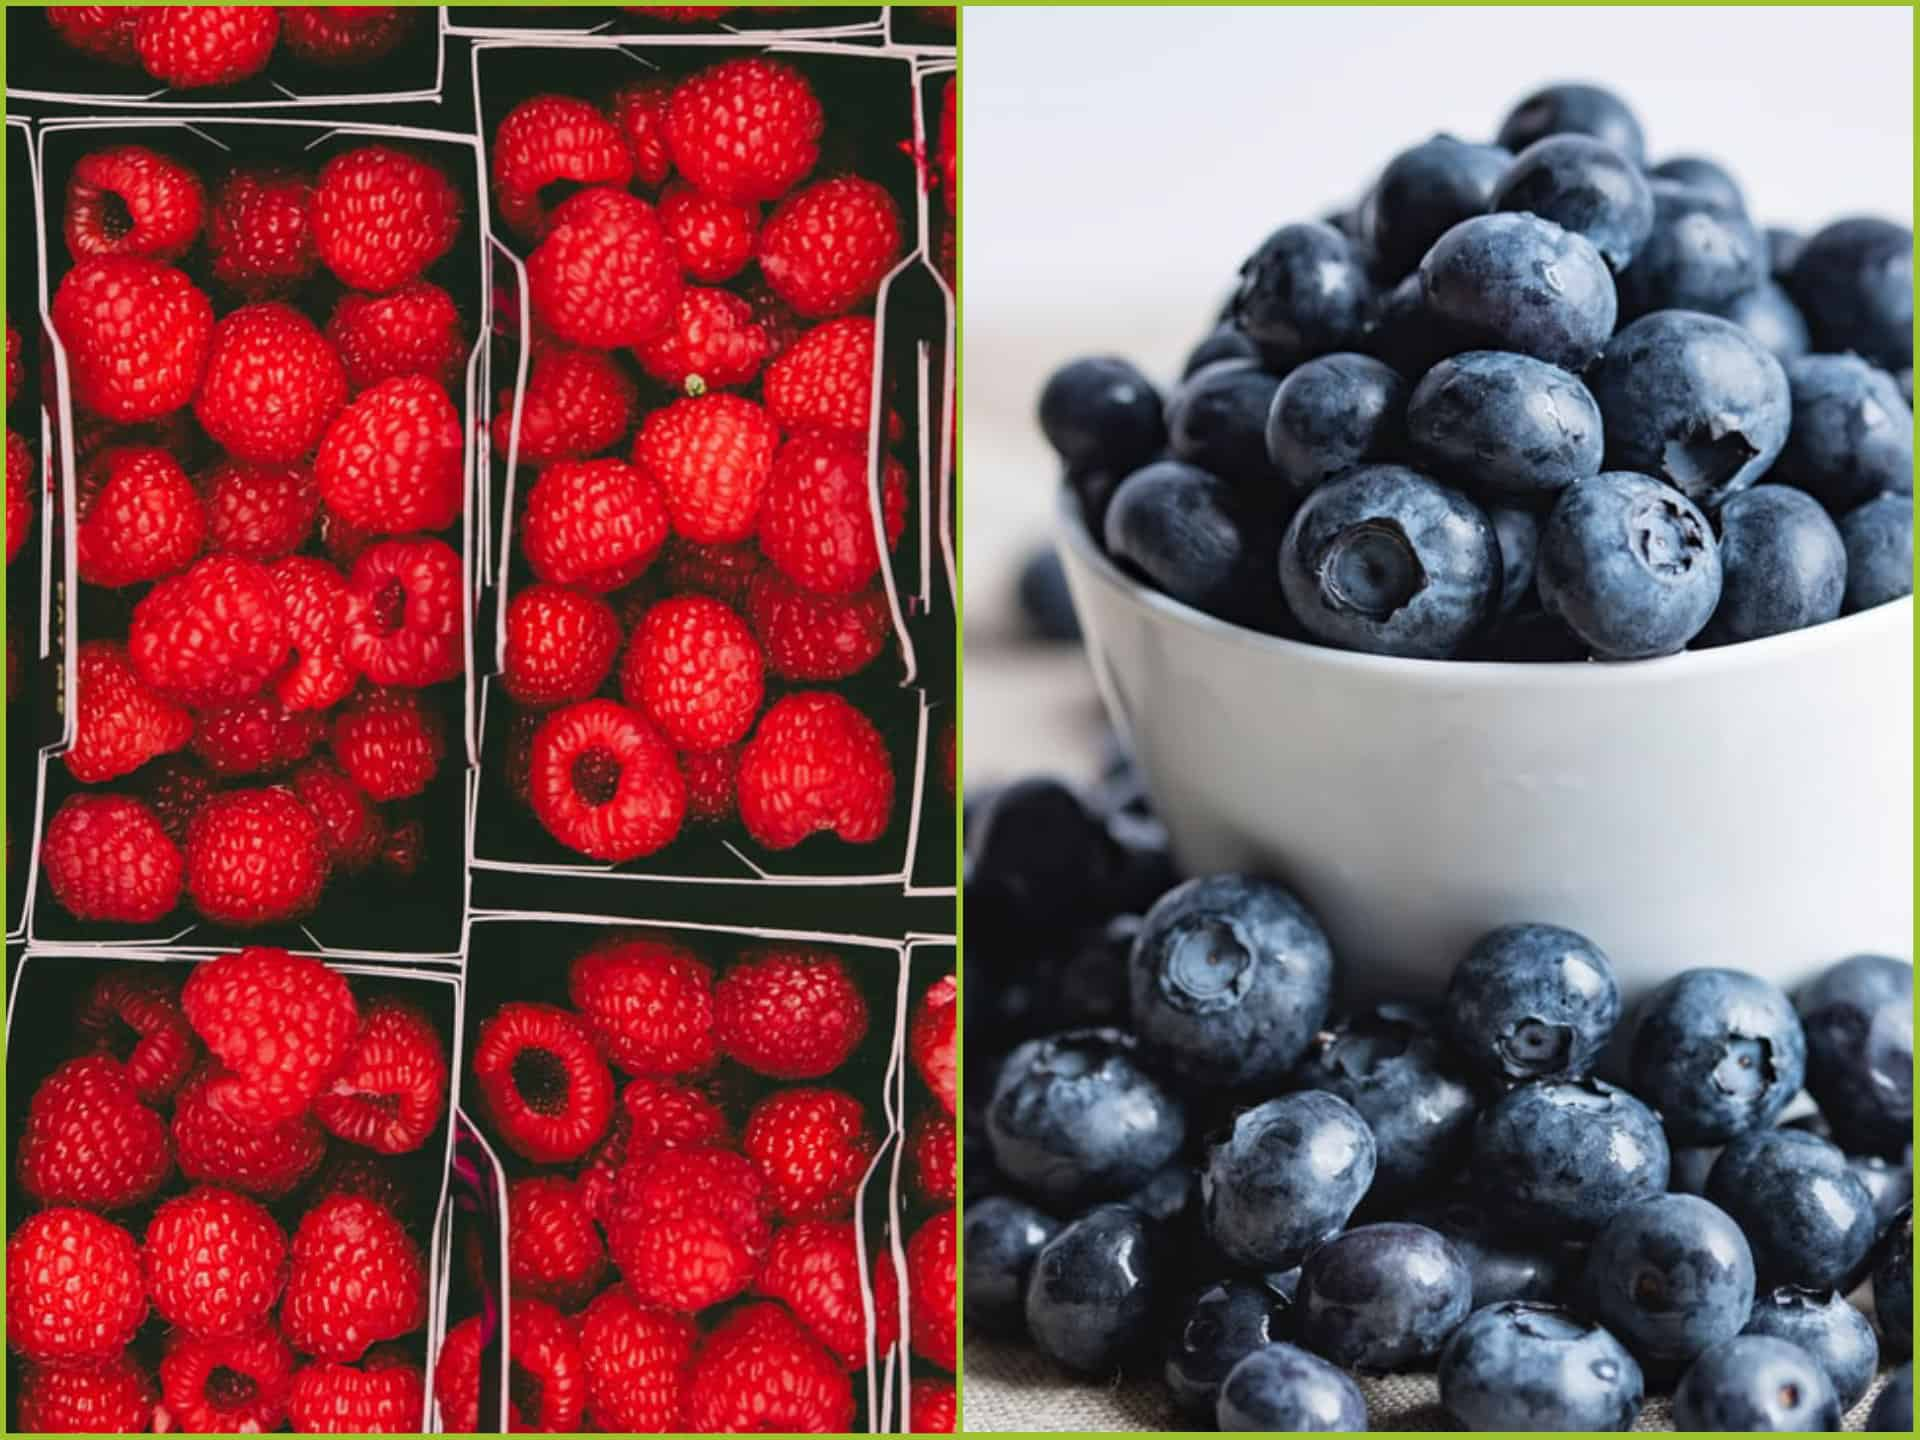 Raspberries and blueberries.